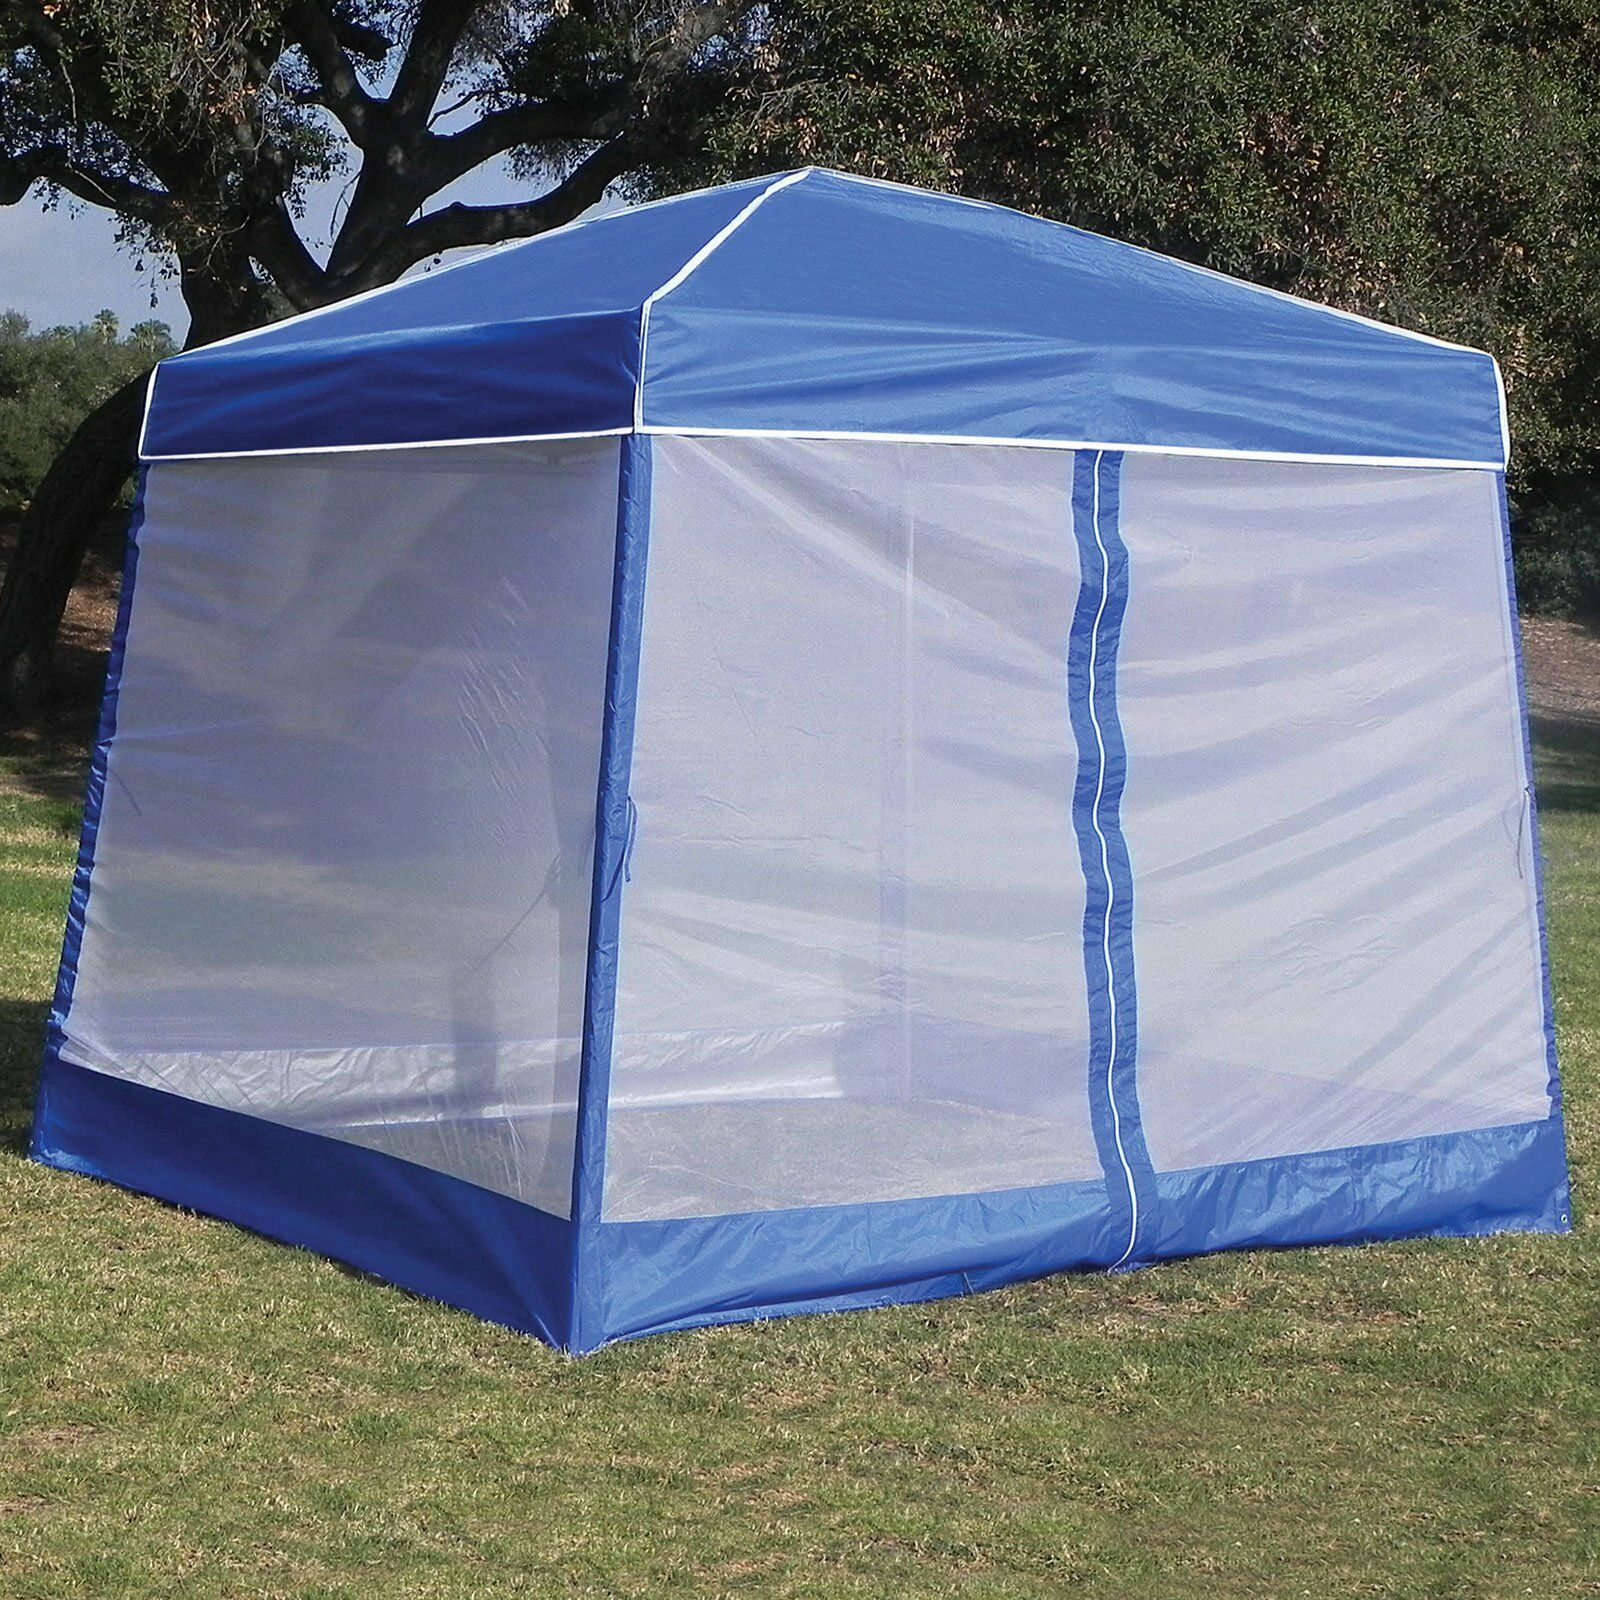 Z-Shade 10' x 10' Angled Leg Instant Canopy Tent Shelter w/ w/ Shelter Screen & Weight Bags c26834